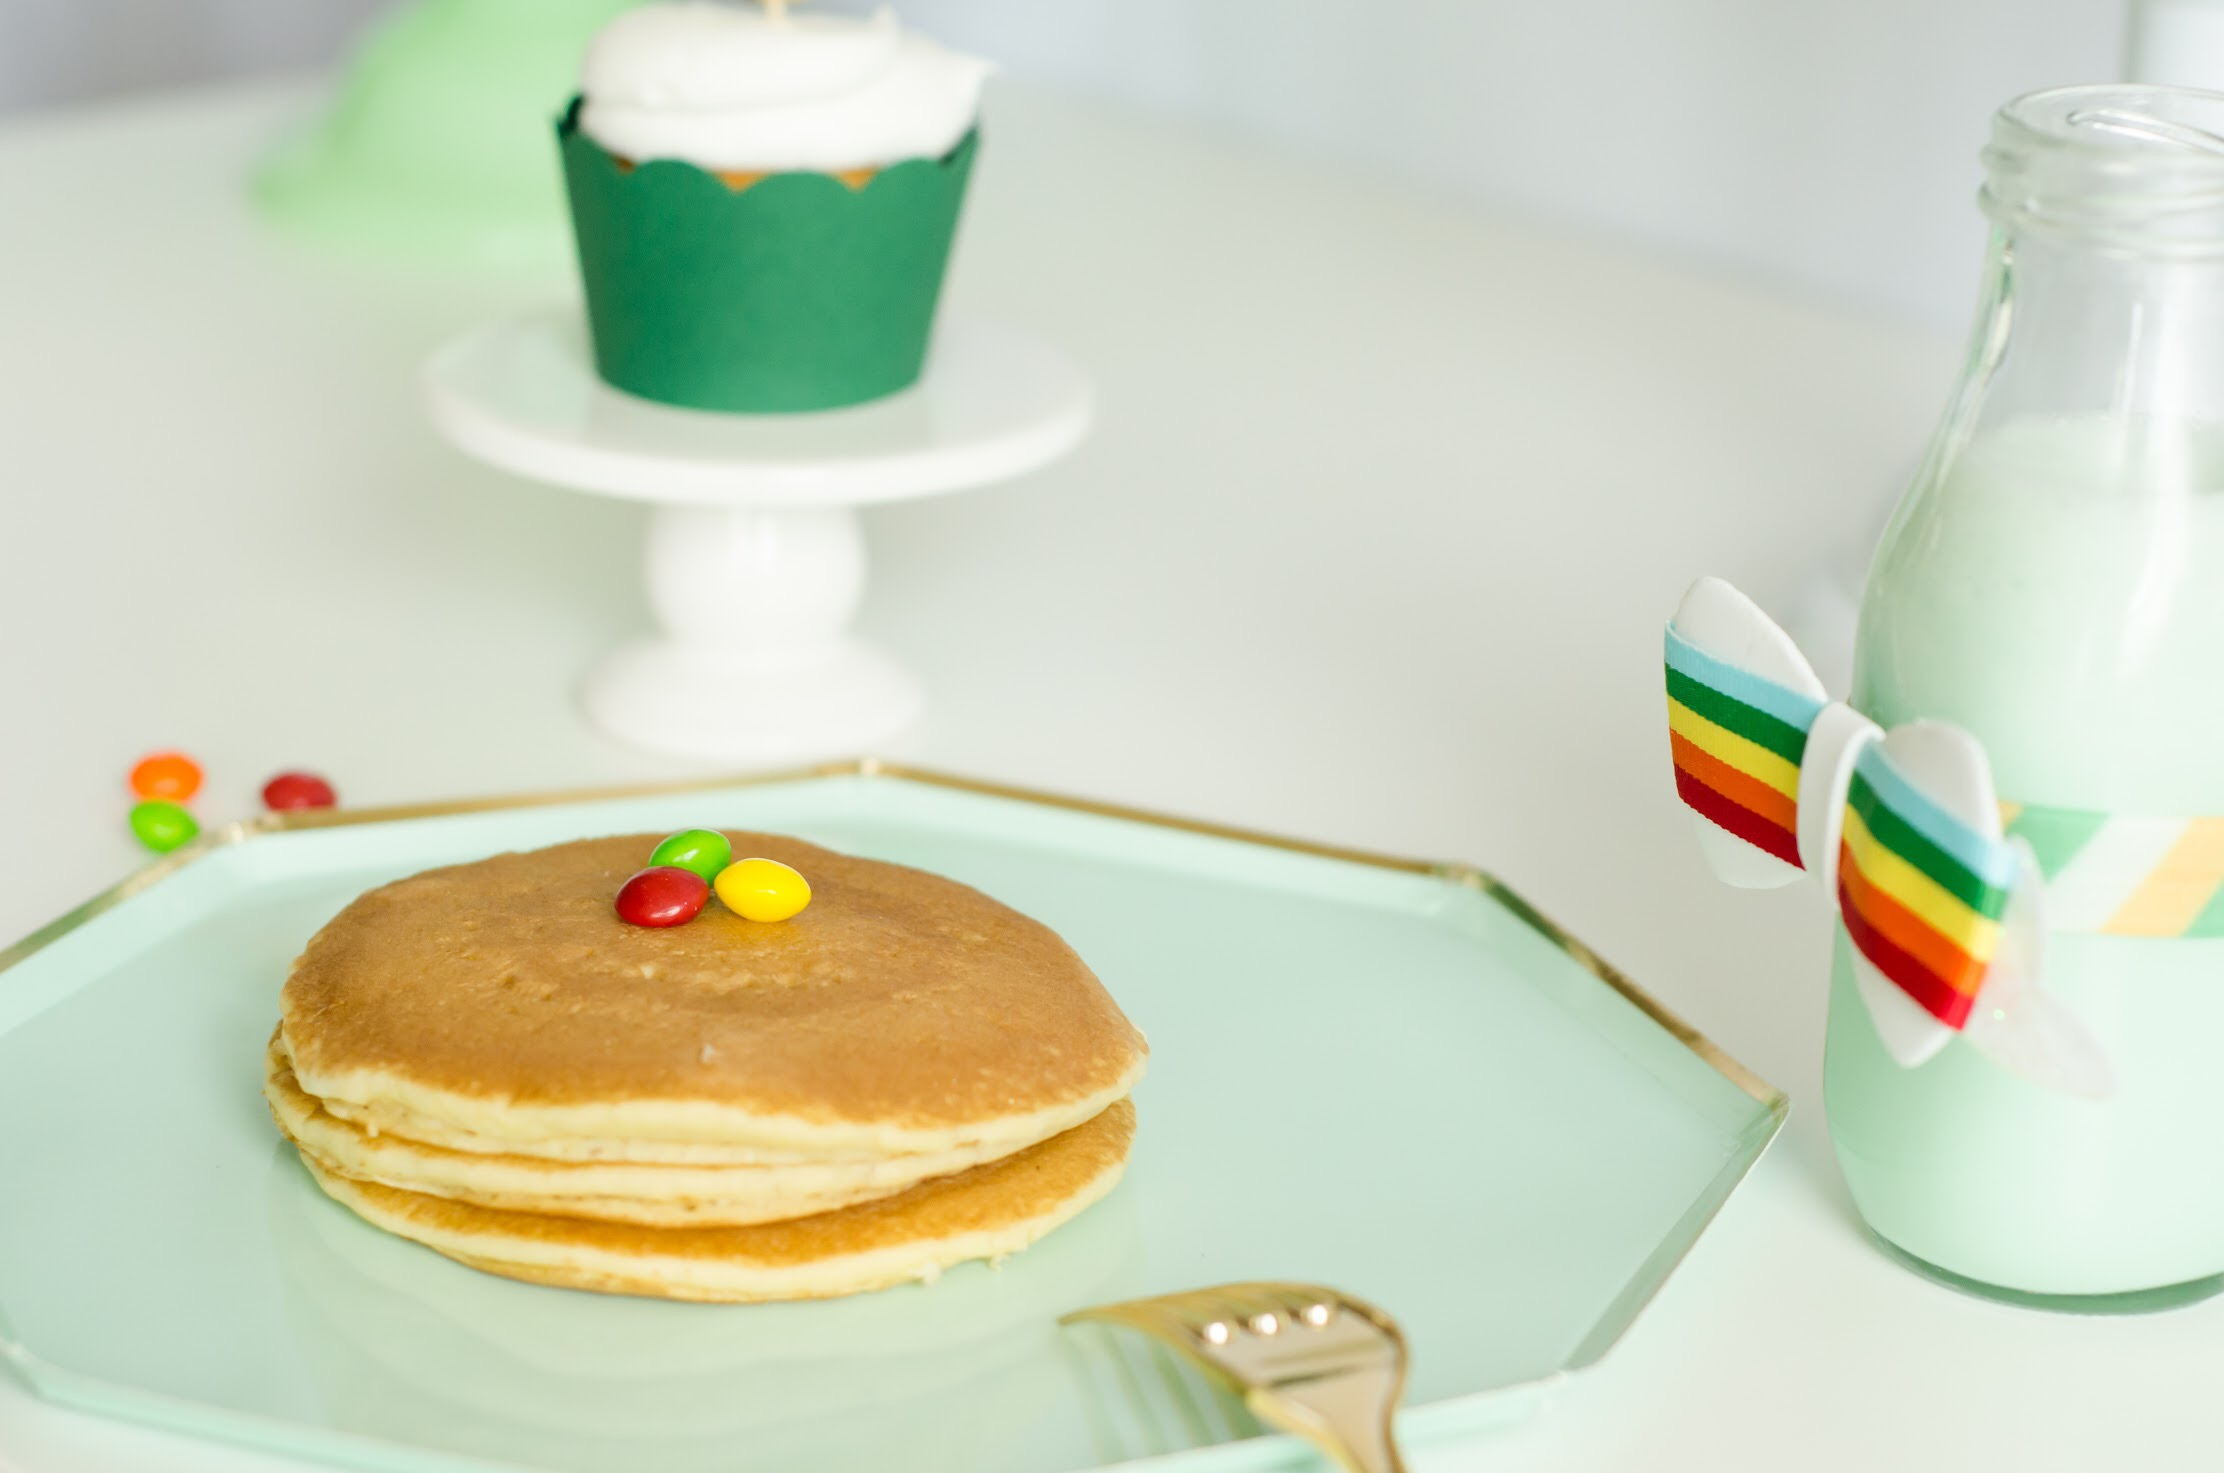 Gold and Green with rainbows are the perfect colors for this St. Paddy's Day Breakfast. Click to see all the green party ideas from Mint Event Design www.minteventdesign.com #partyideas #partydecorations #breakfastfood #saintpatricksday #stpatricksday #pancakes